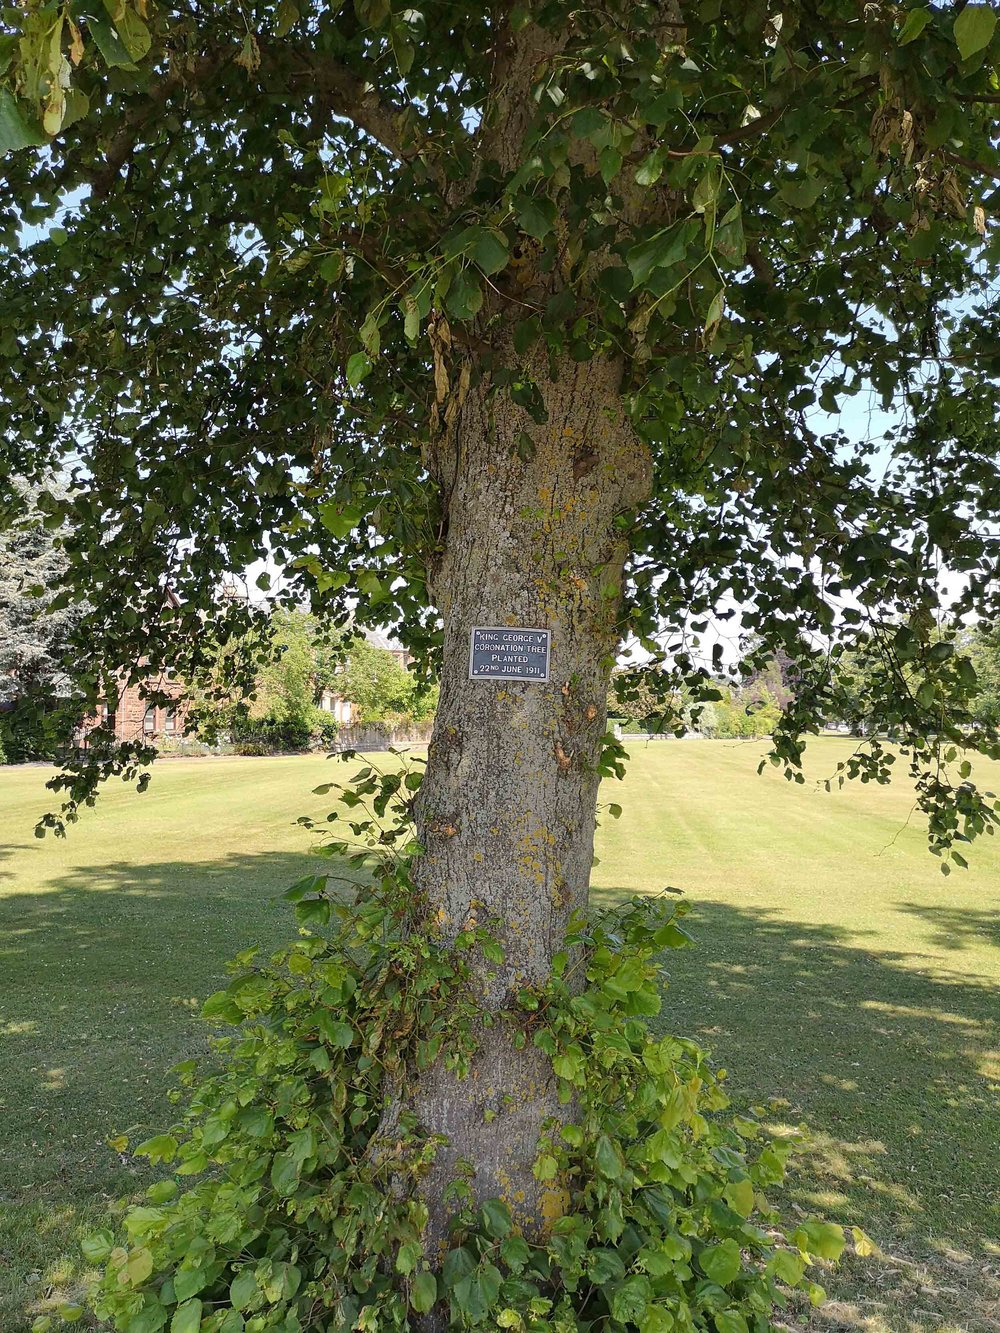 Tree planted on the village green planted for George V's coronation, June 22 1911